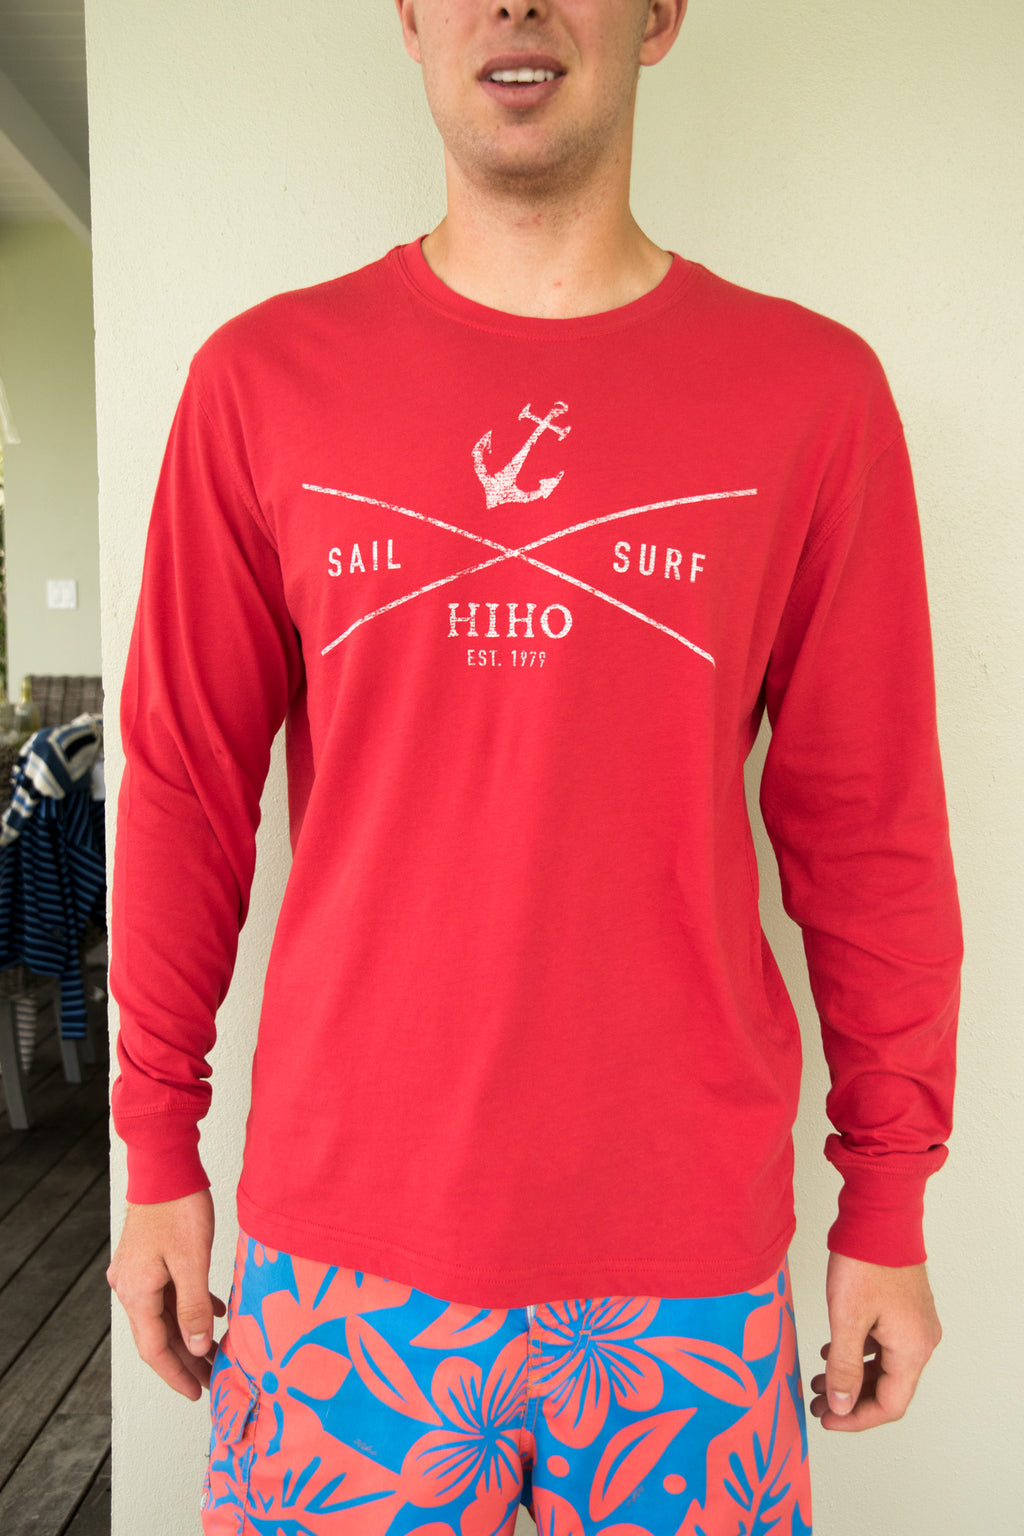 Long Sleeve Sail & Surf T-shirt - Red